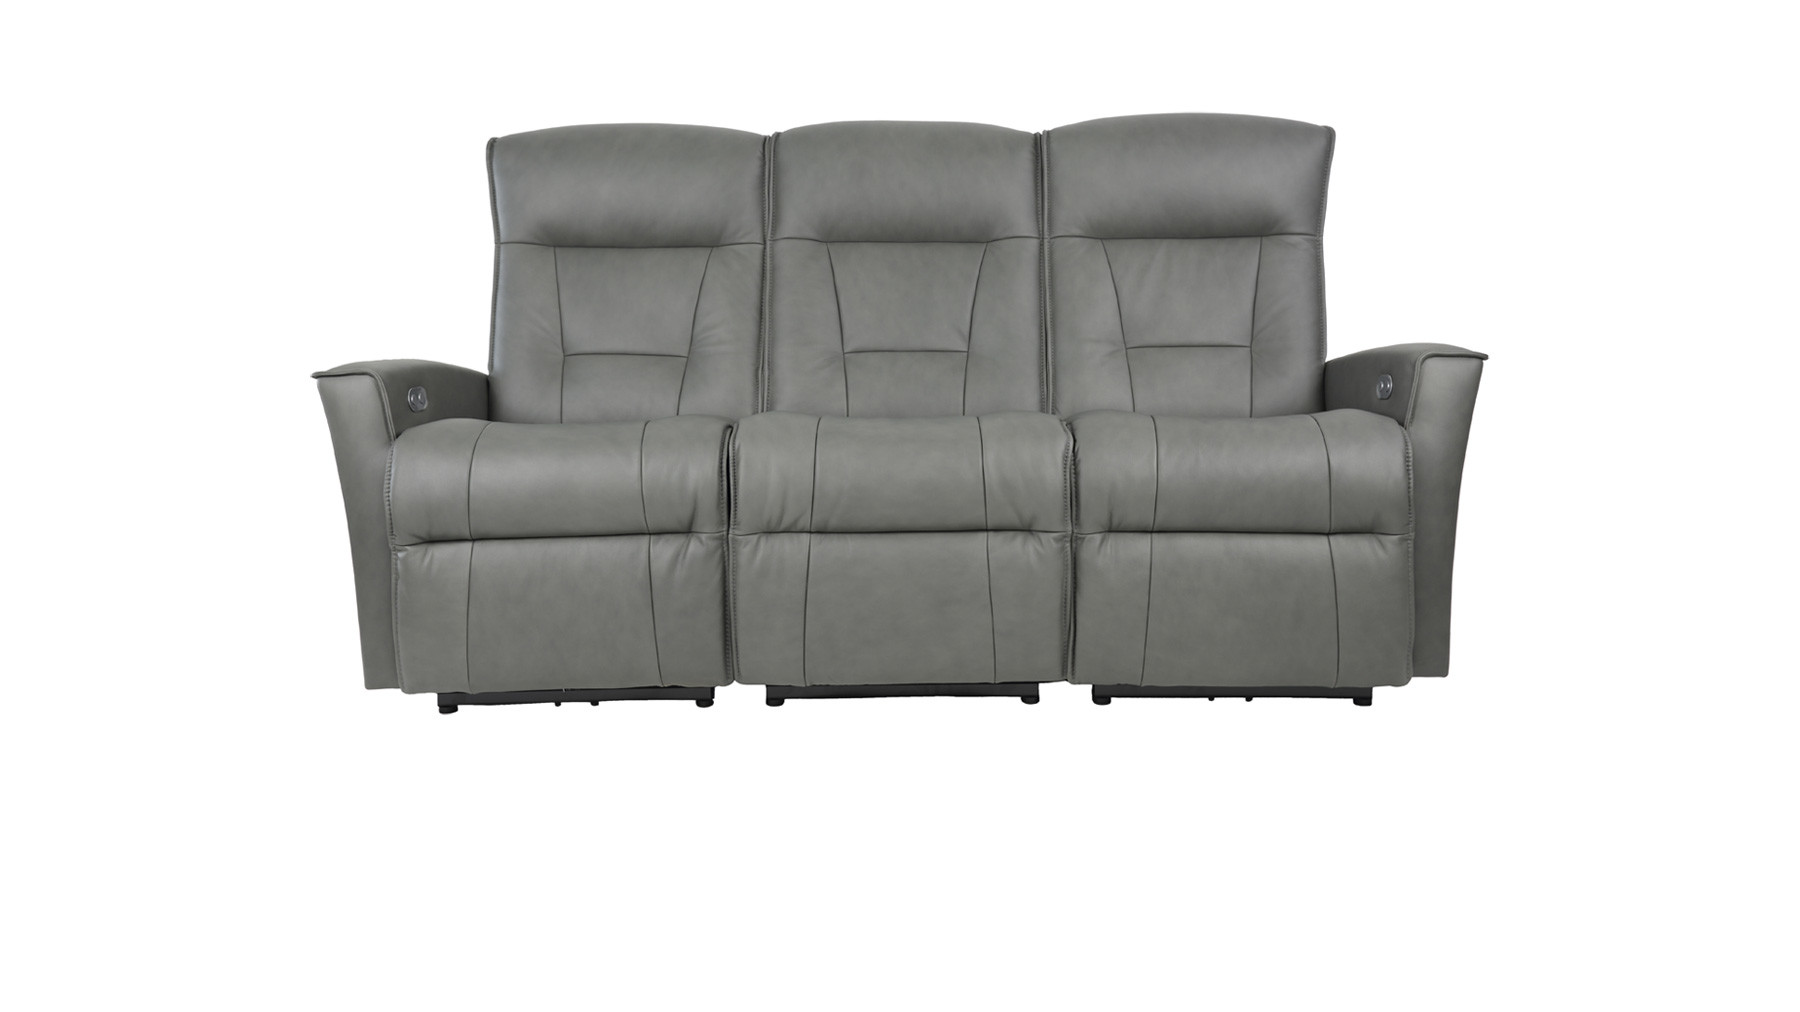 Stressless Kino Products Fjords